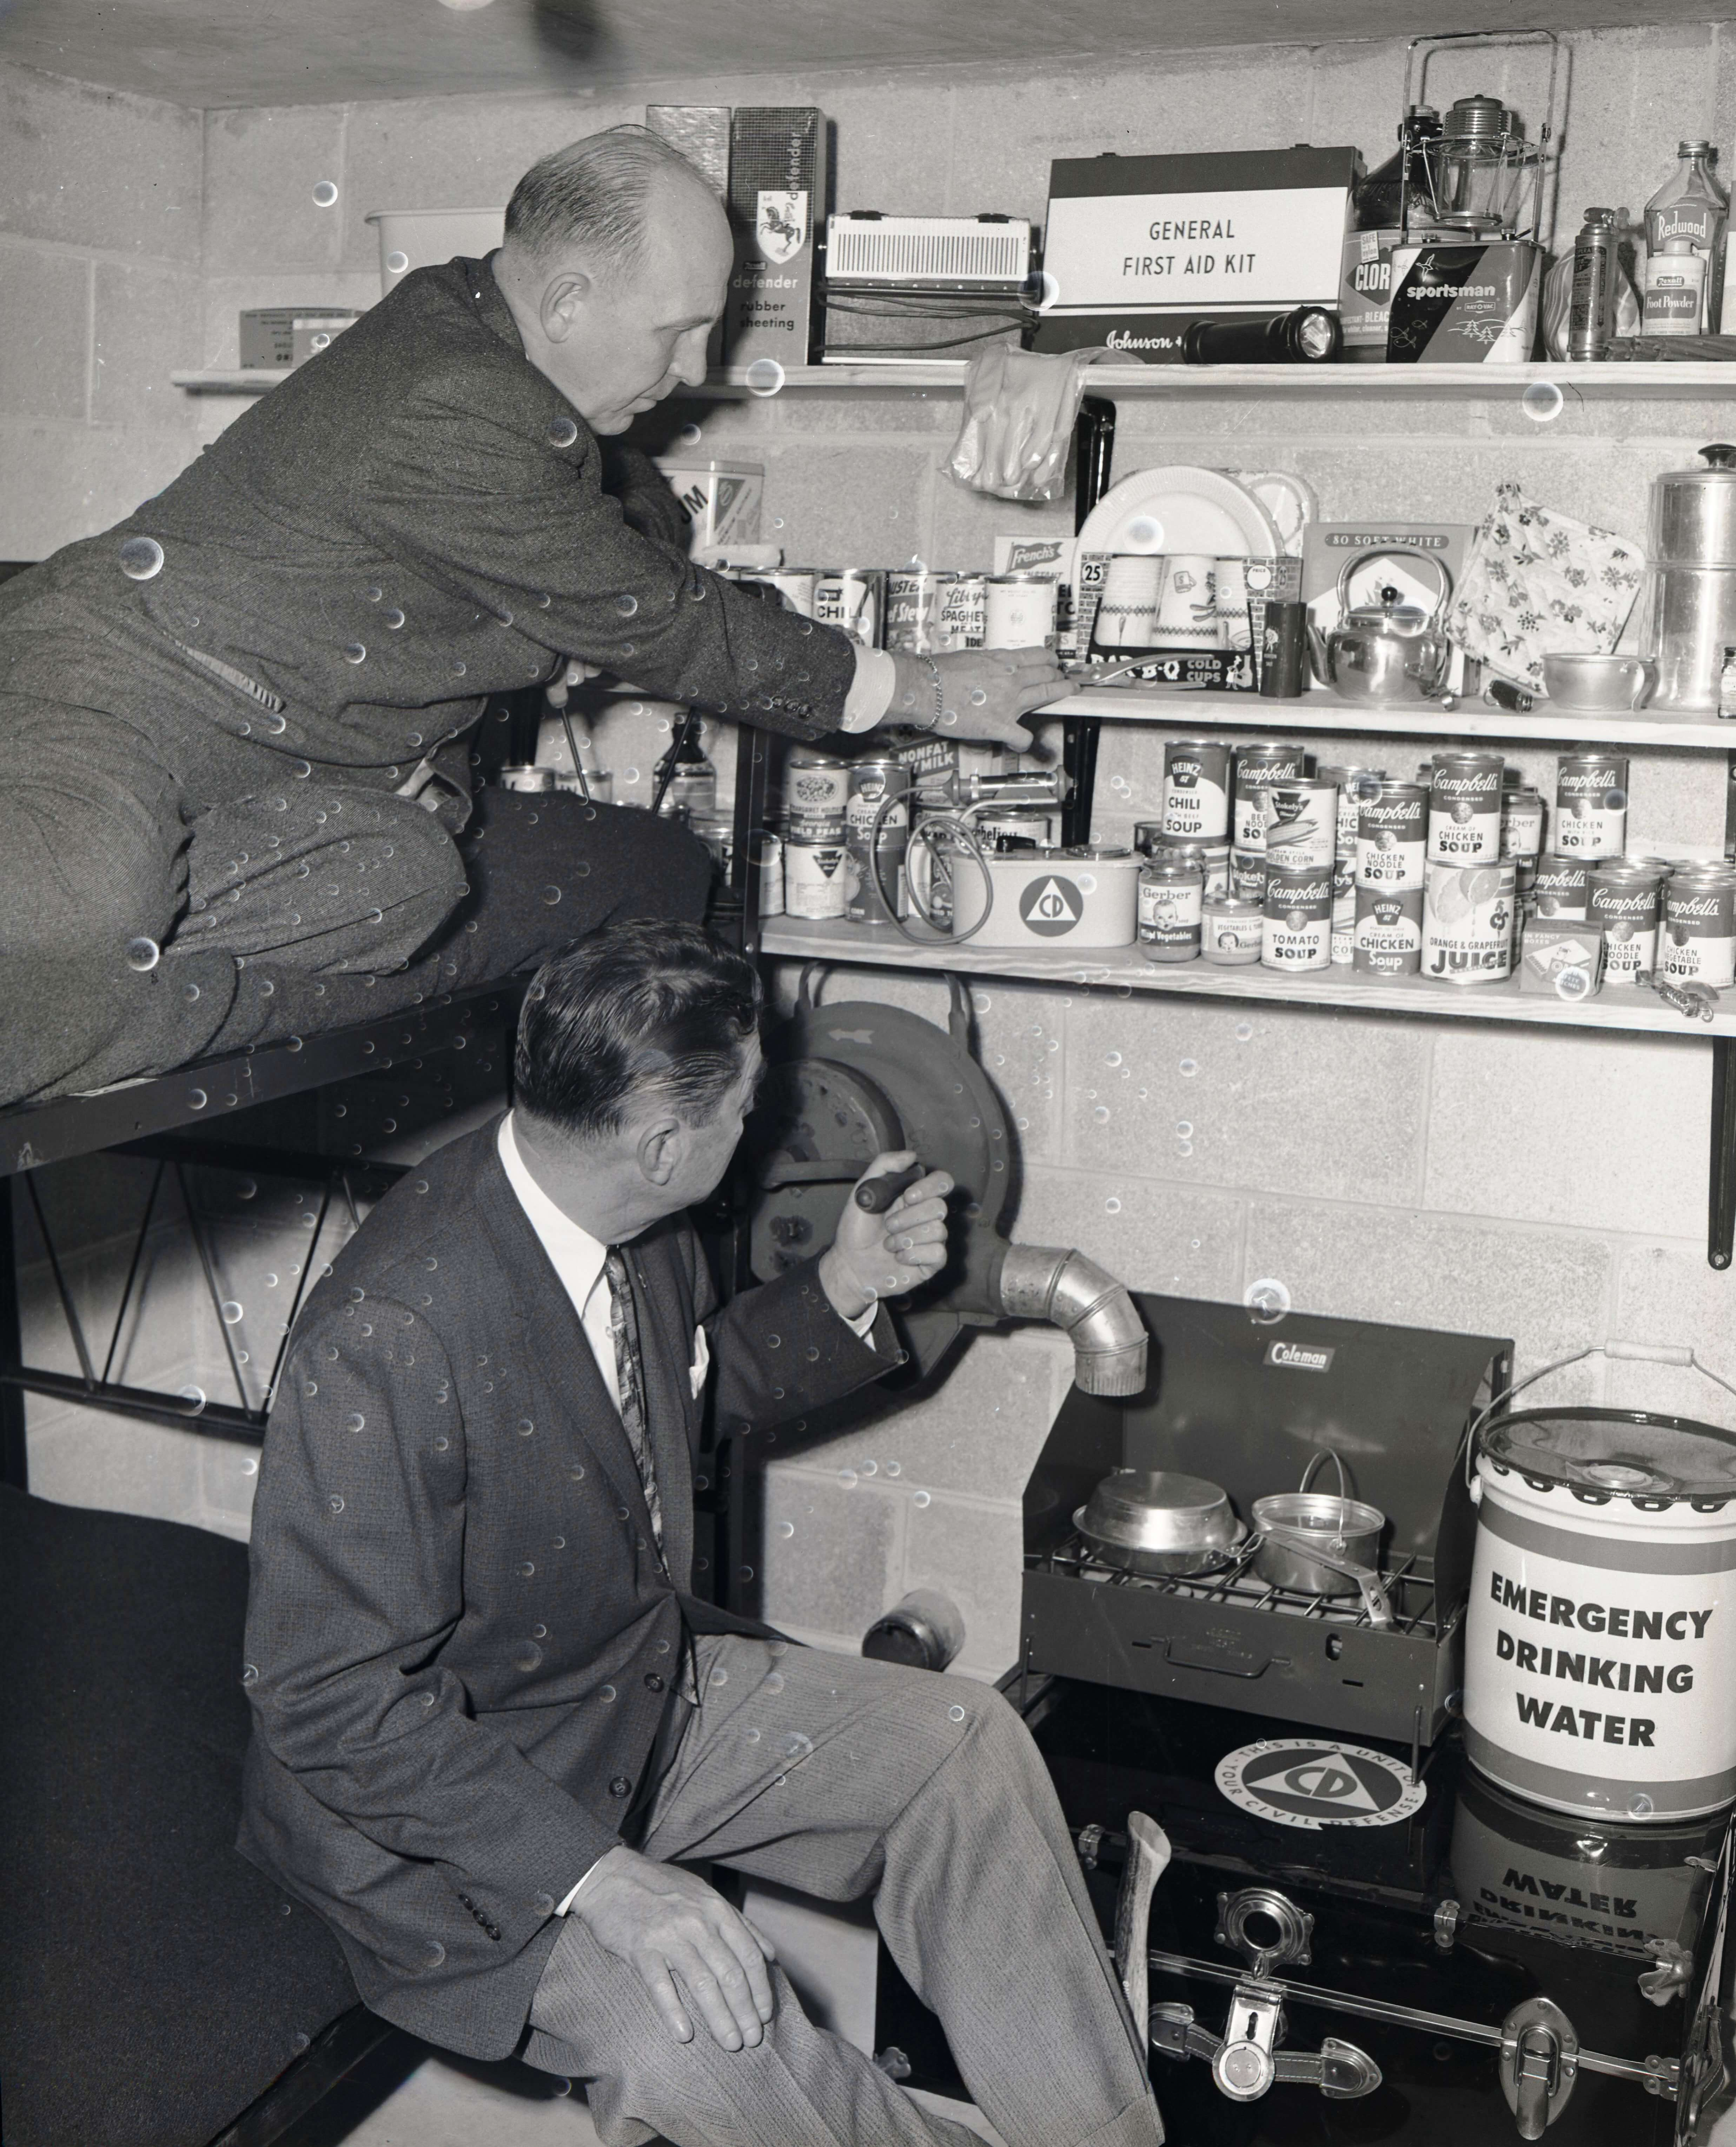 Civil Defense - Fallout Shelter - 1960 01